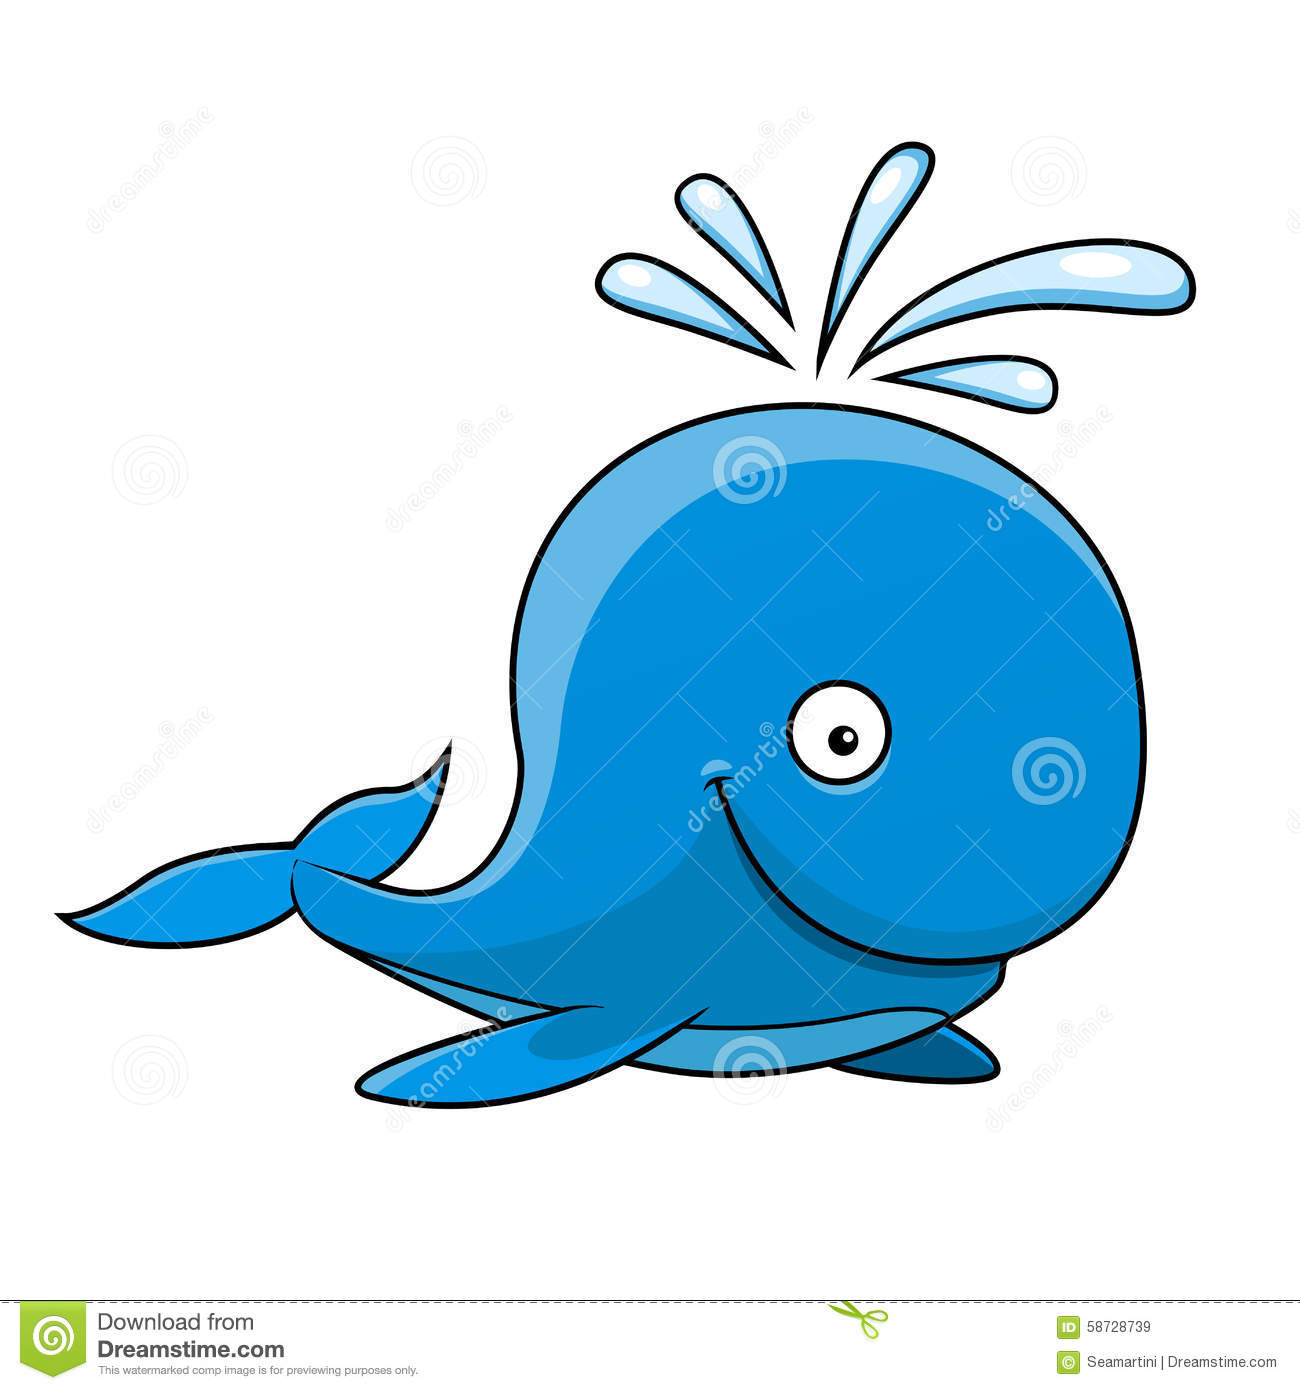 Cute whale in water cartoon isolated illustration stock photography - Big Blue Cartoon Happy Isolated Smile Water Whale